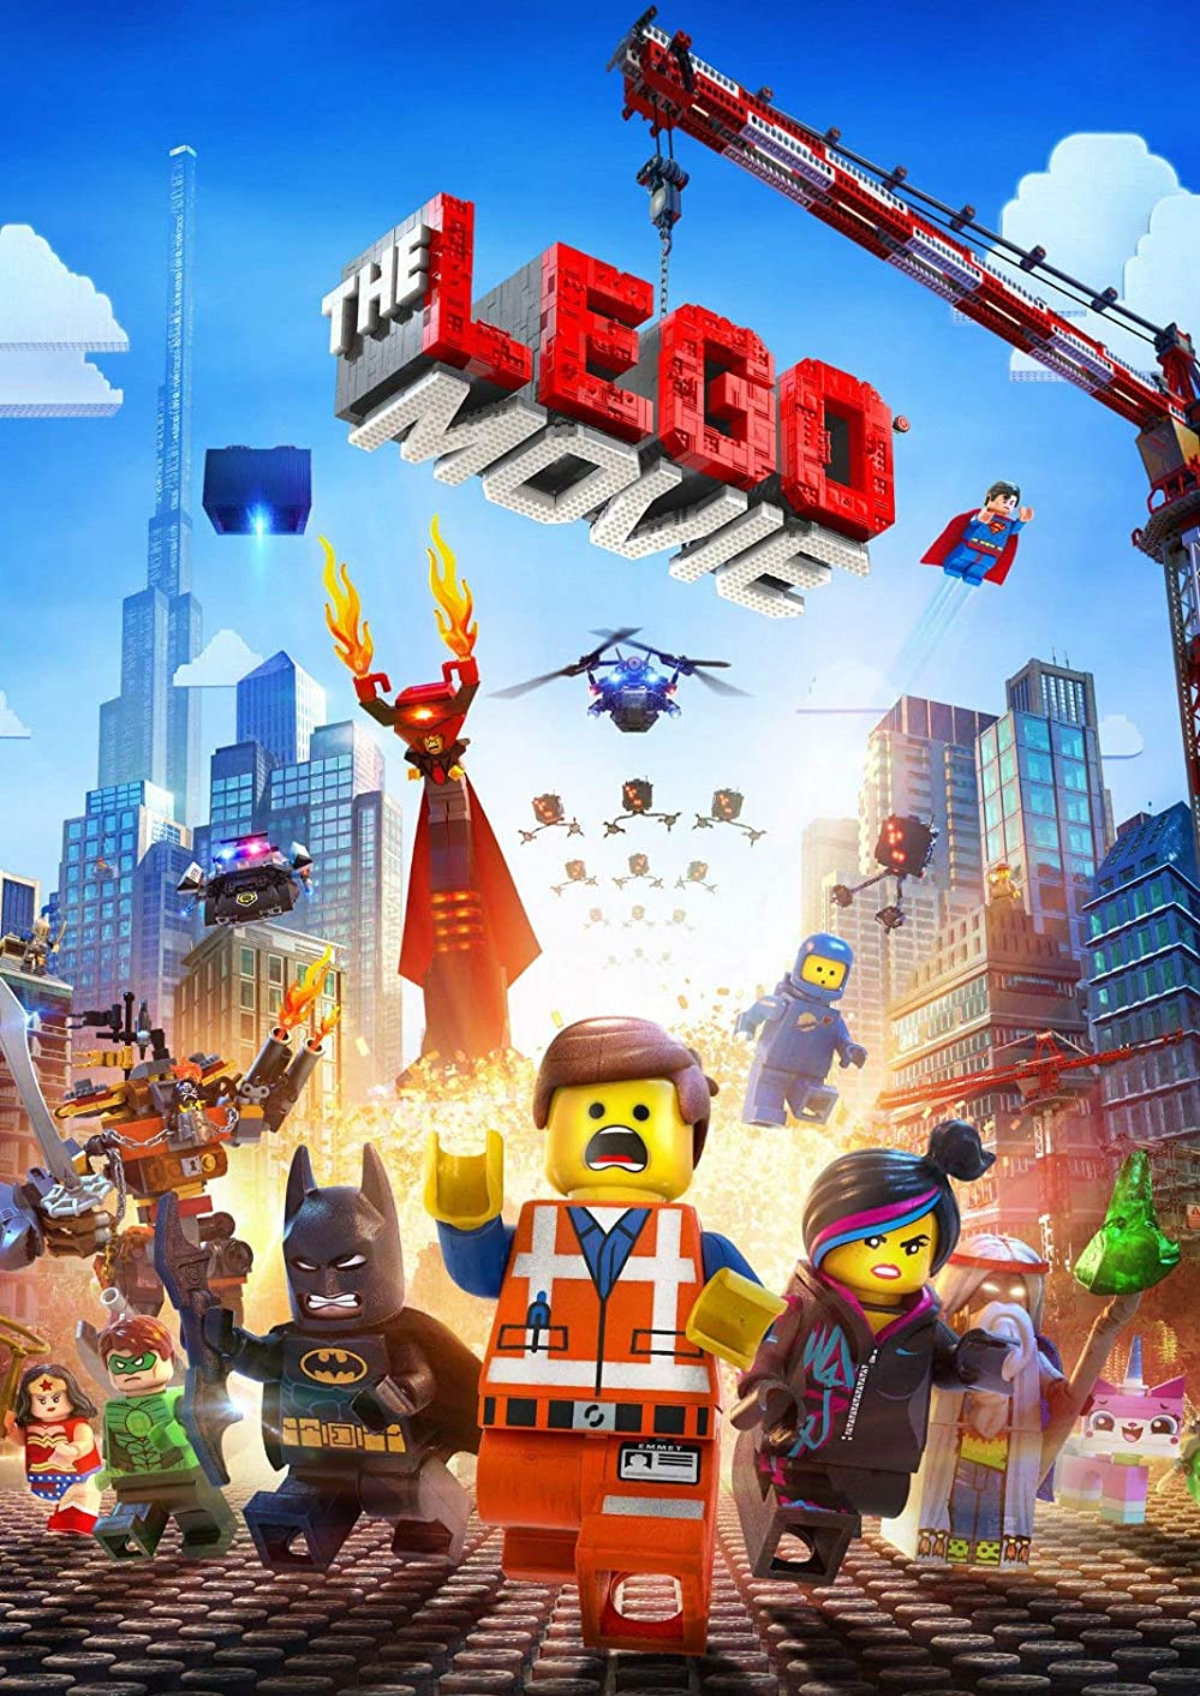 'The Lego Movie' movie poster